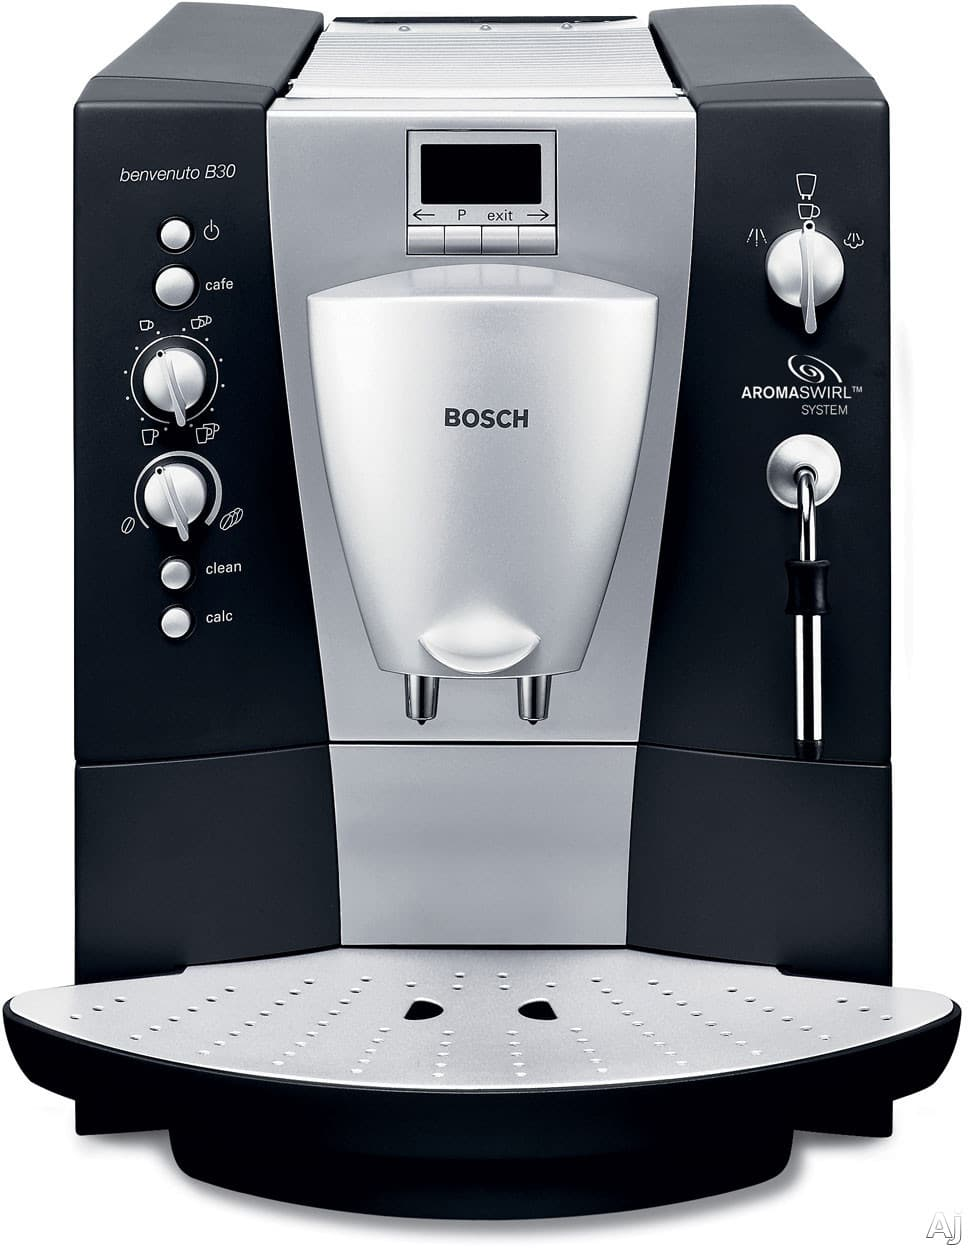 Bosch Tca6301uc Fully Automatic Freestanding Coffee